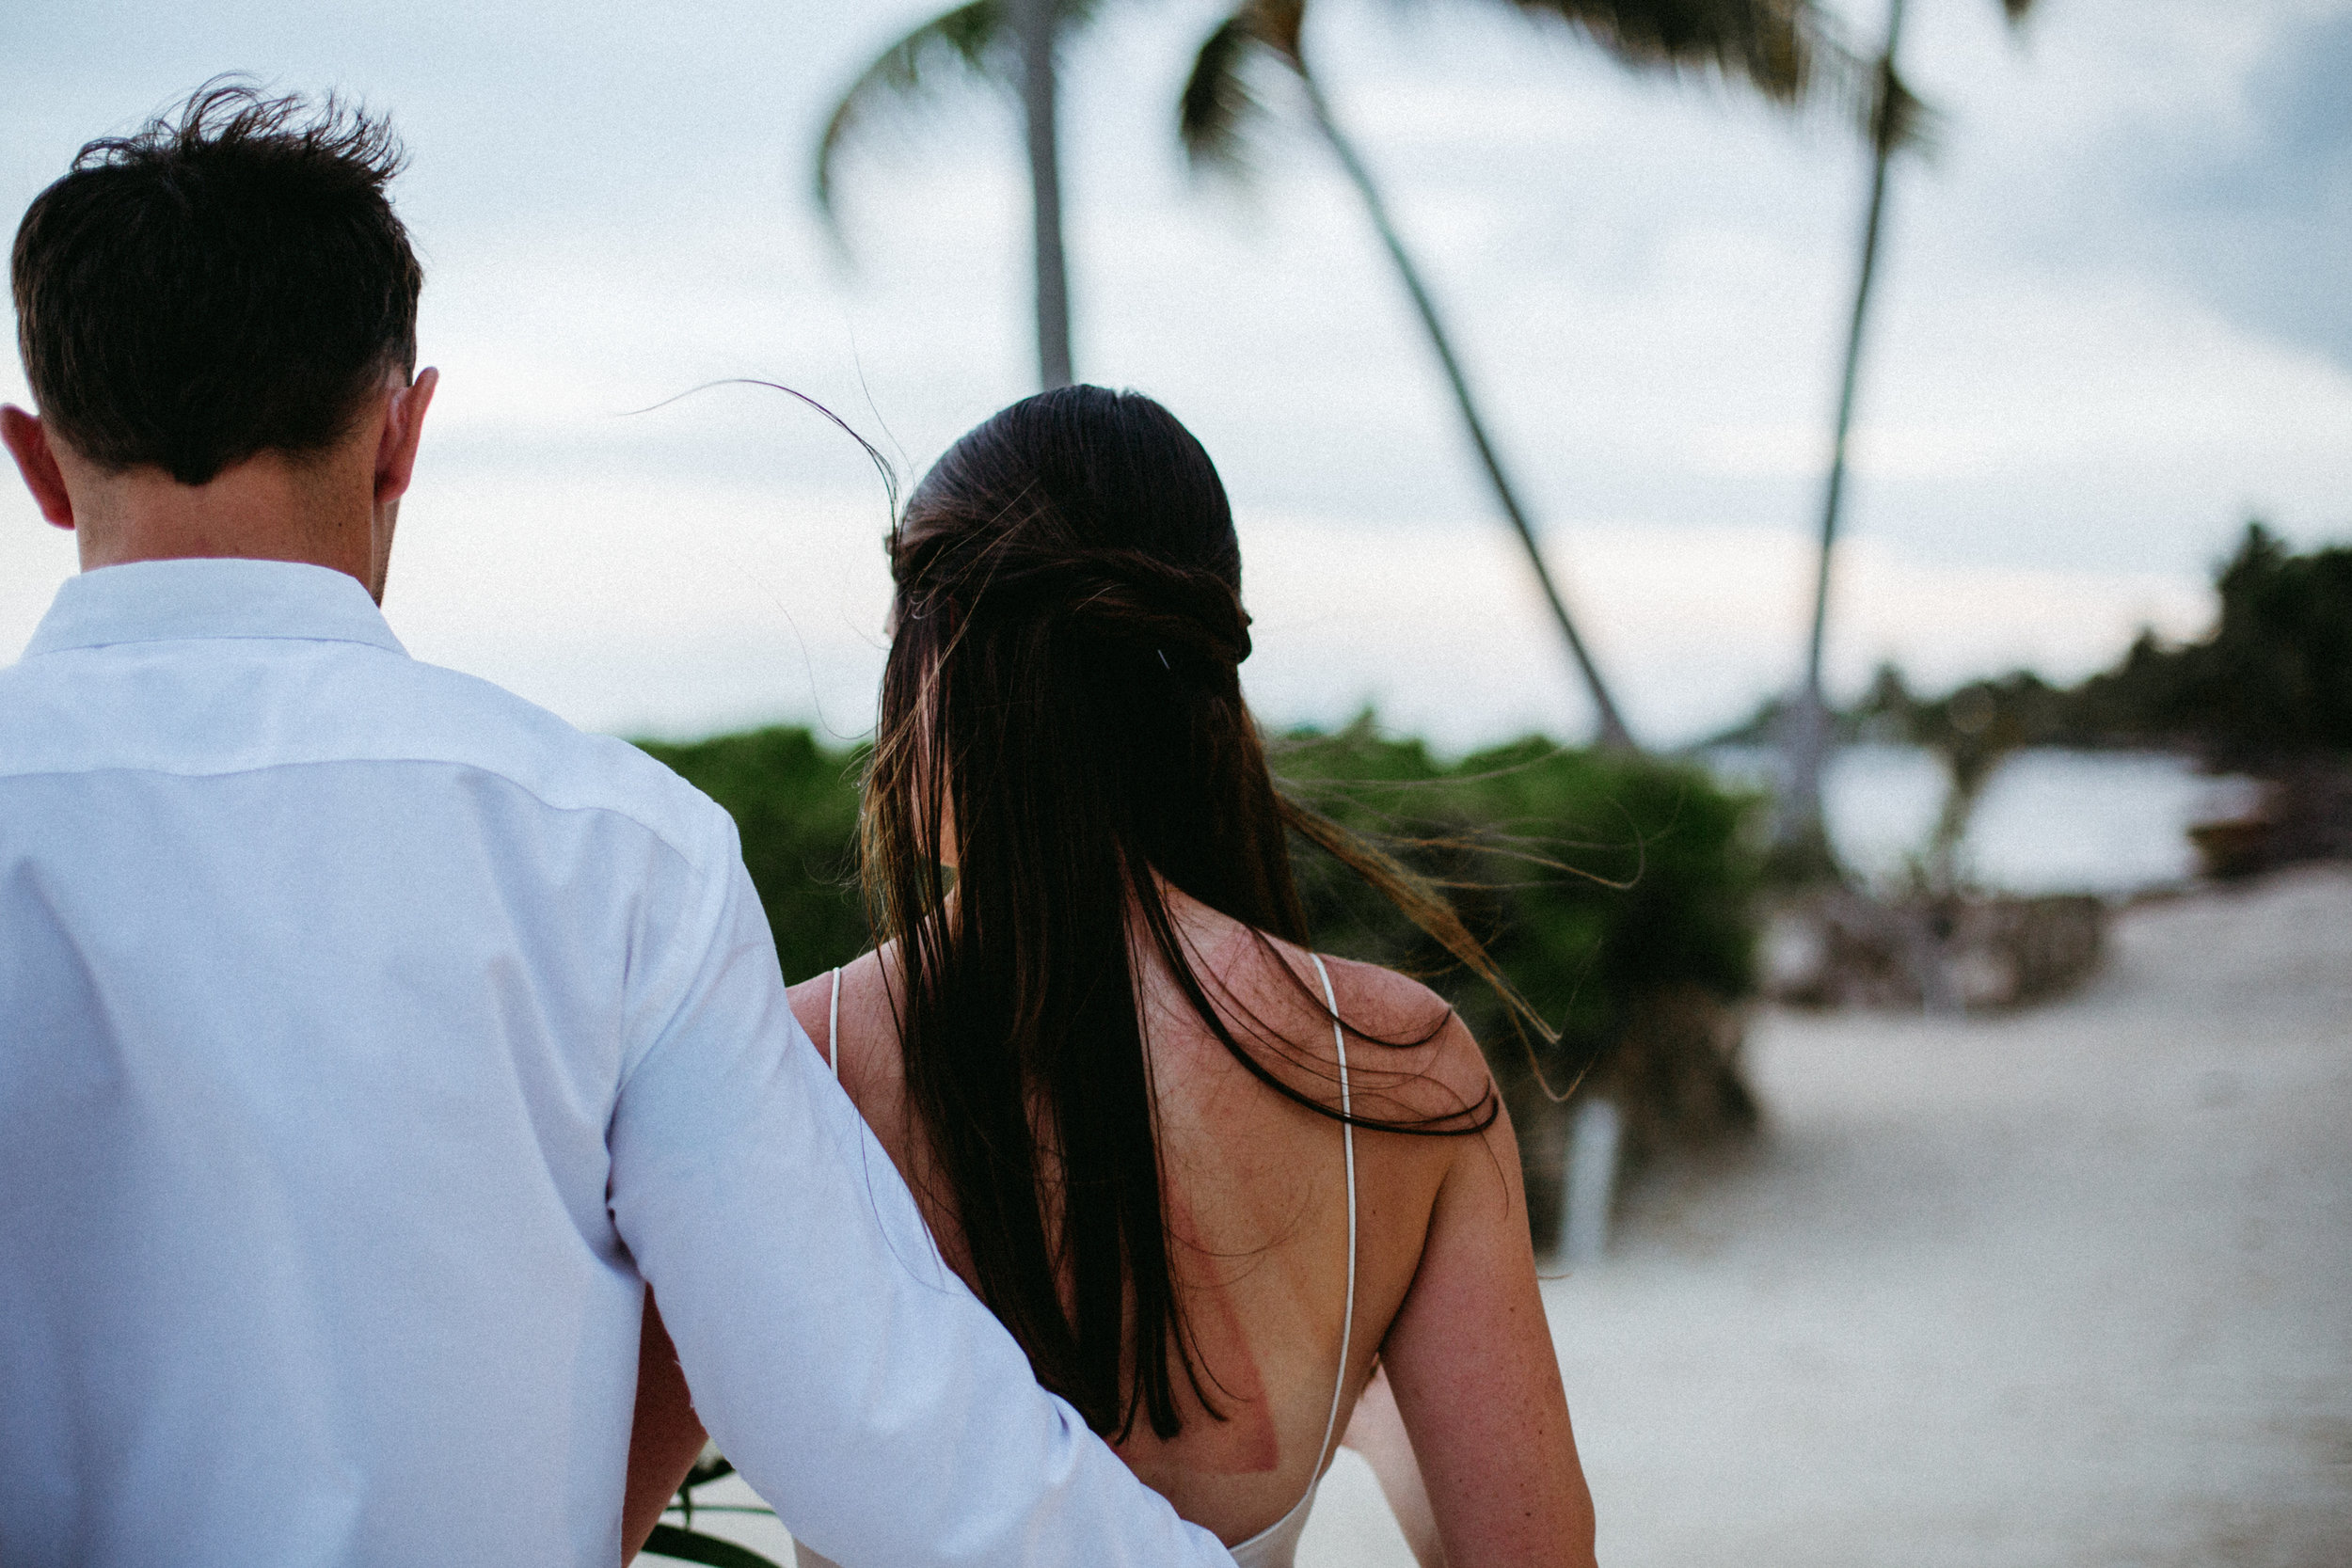 san-pescador-belize-wedding-christinemariephoto-j-k-122.jpg